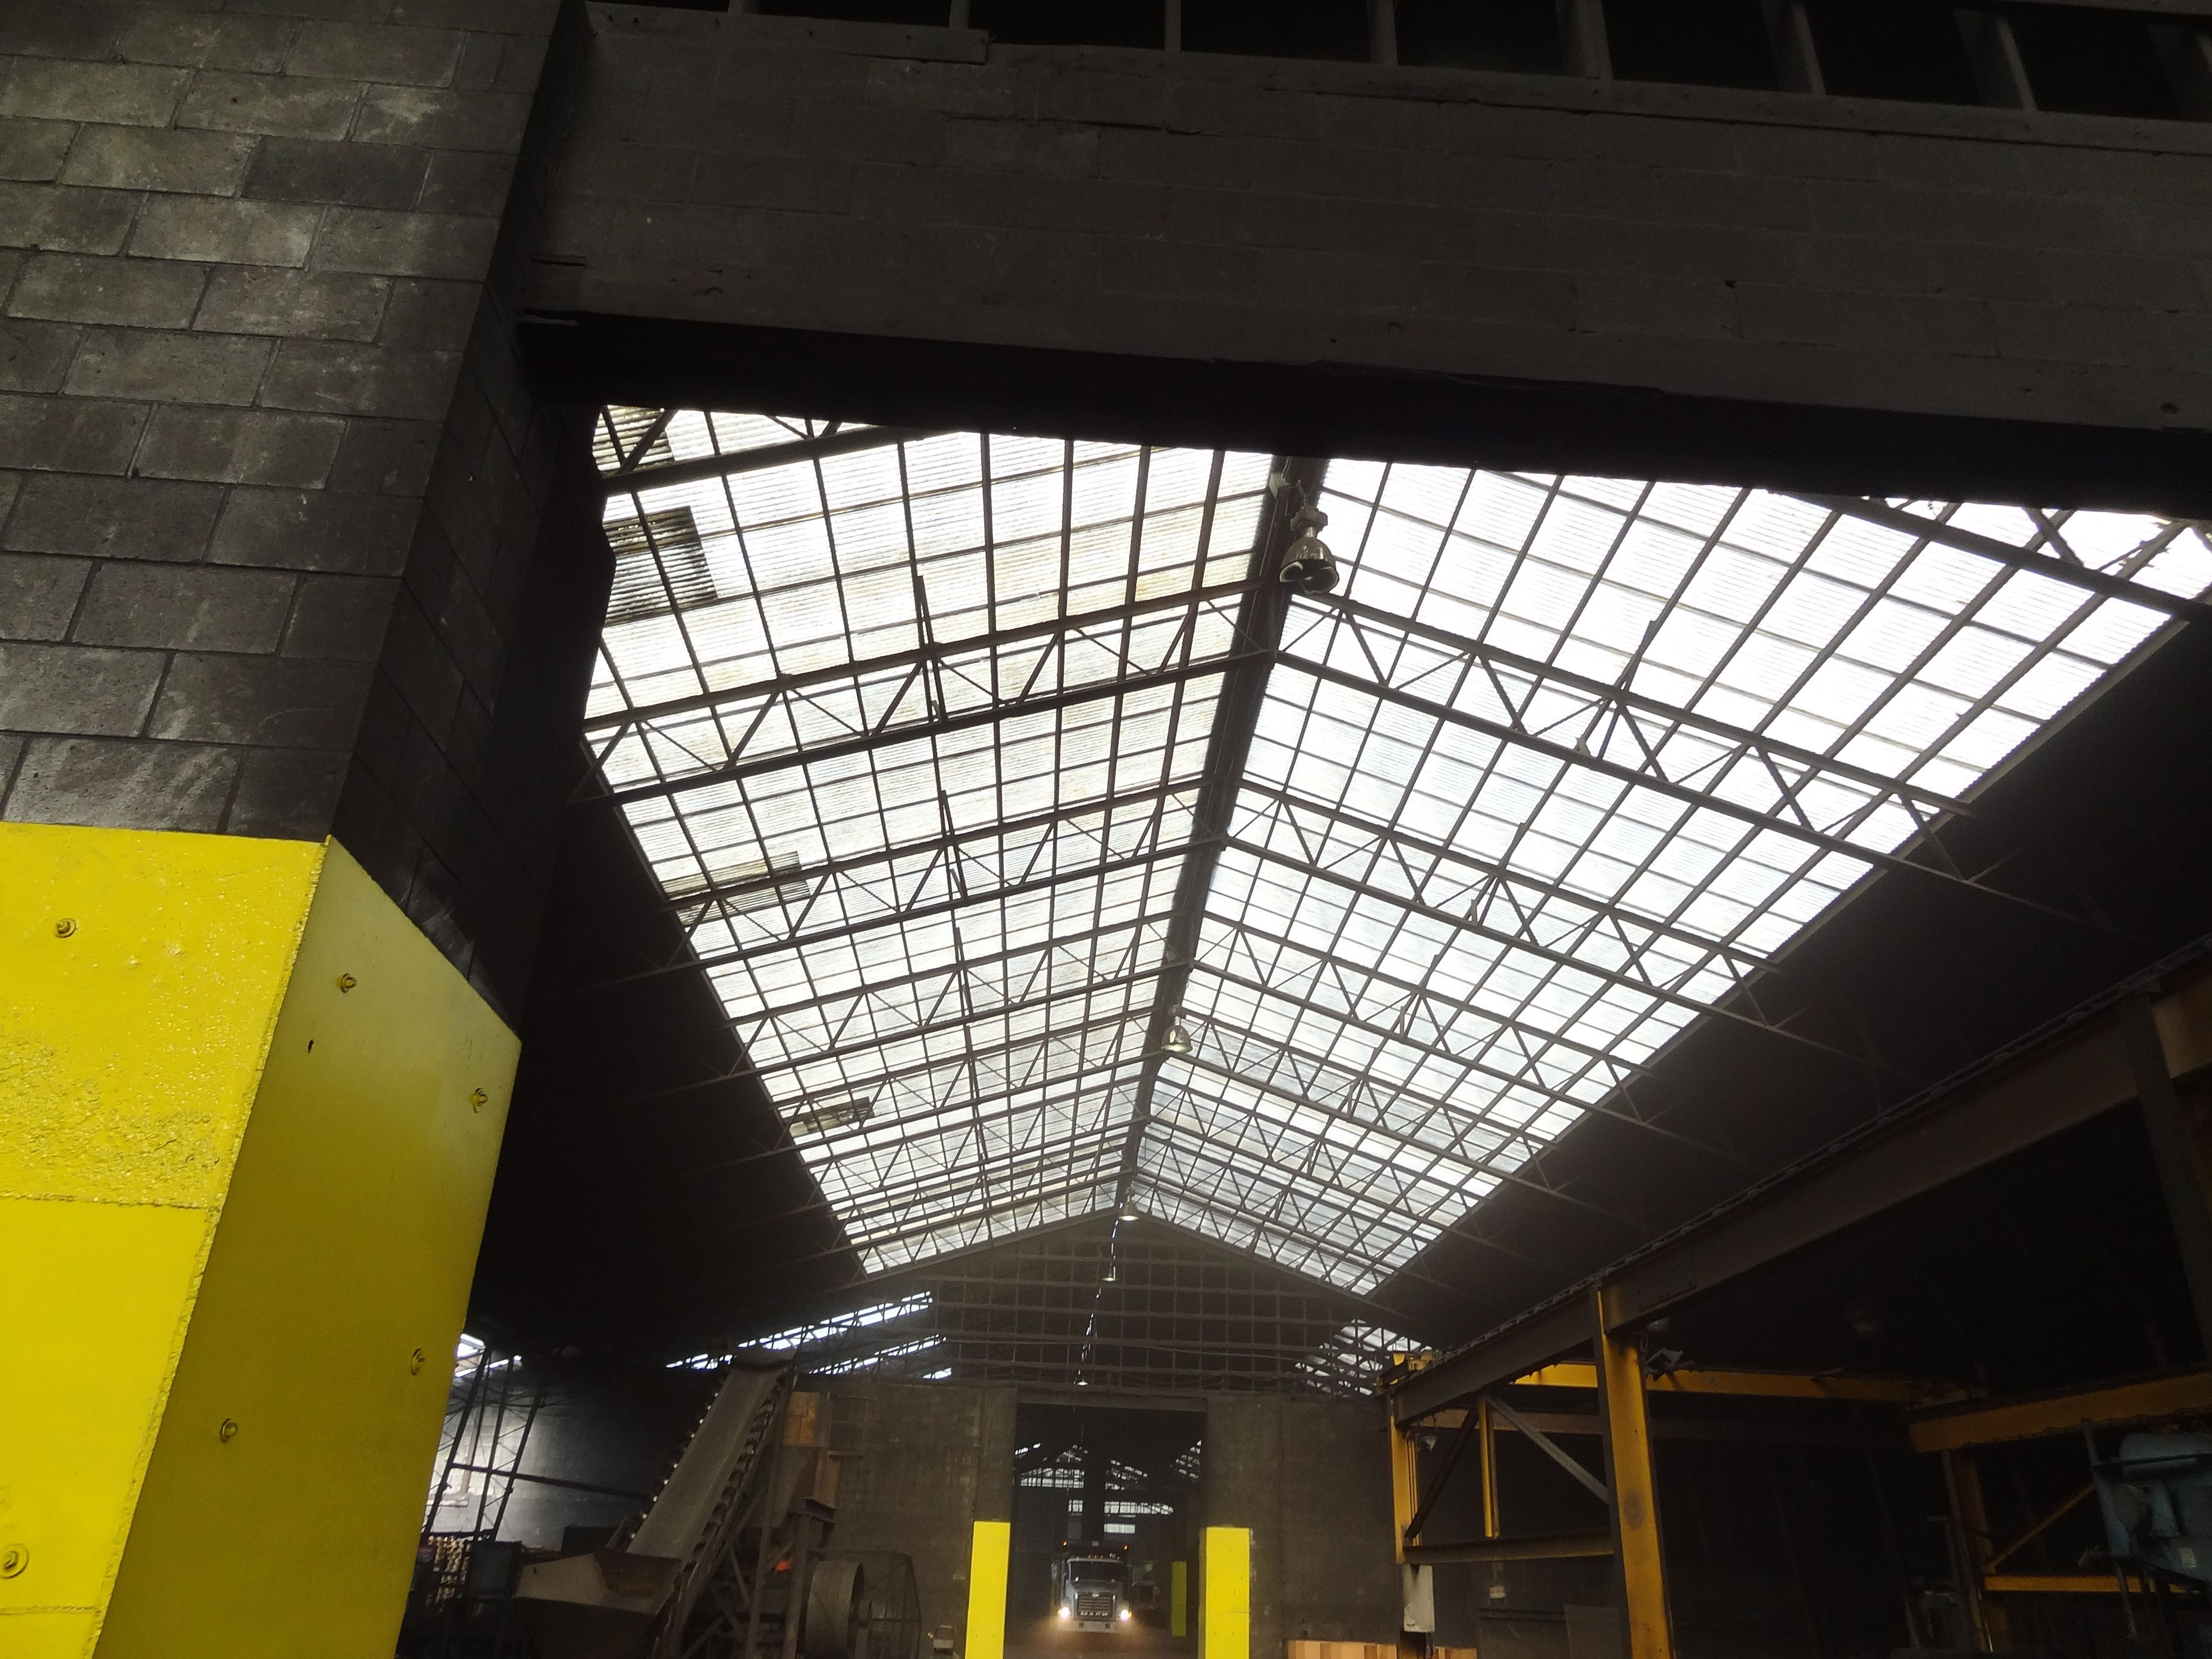 Fiberglass Roofing Panels And Corrugated Roof Panels Dipcraft Fibreglass Roof Roof Panels Fiberglass Roof Panels